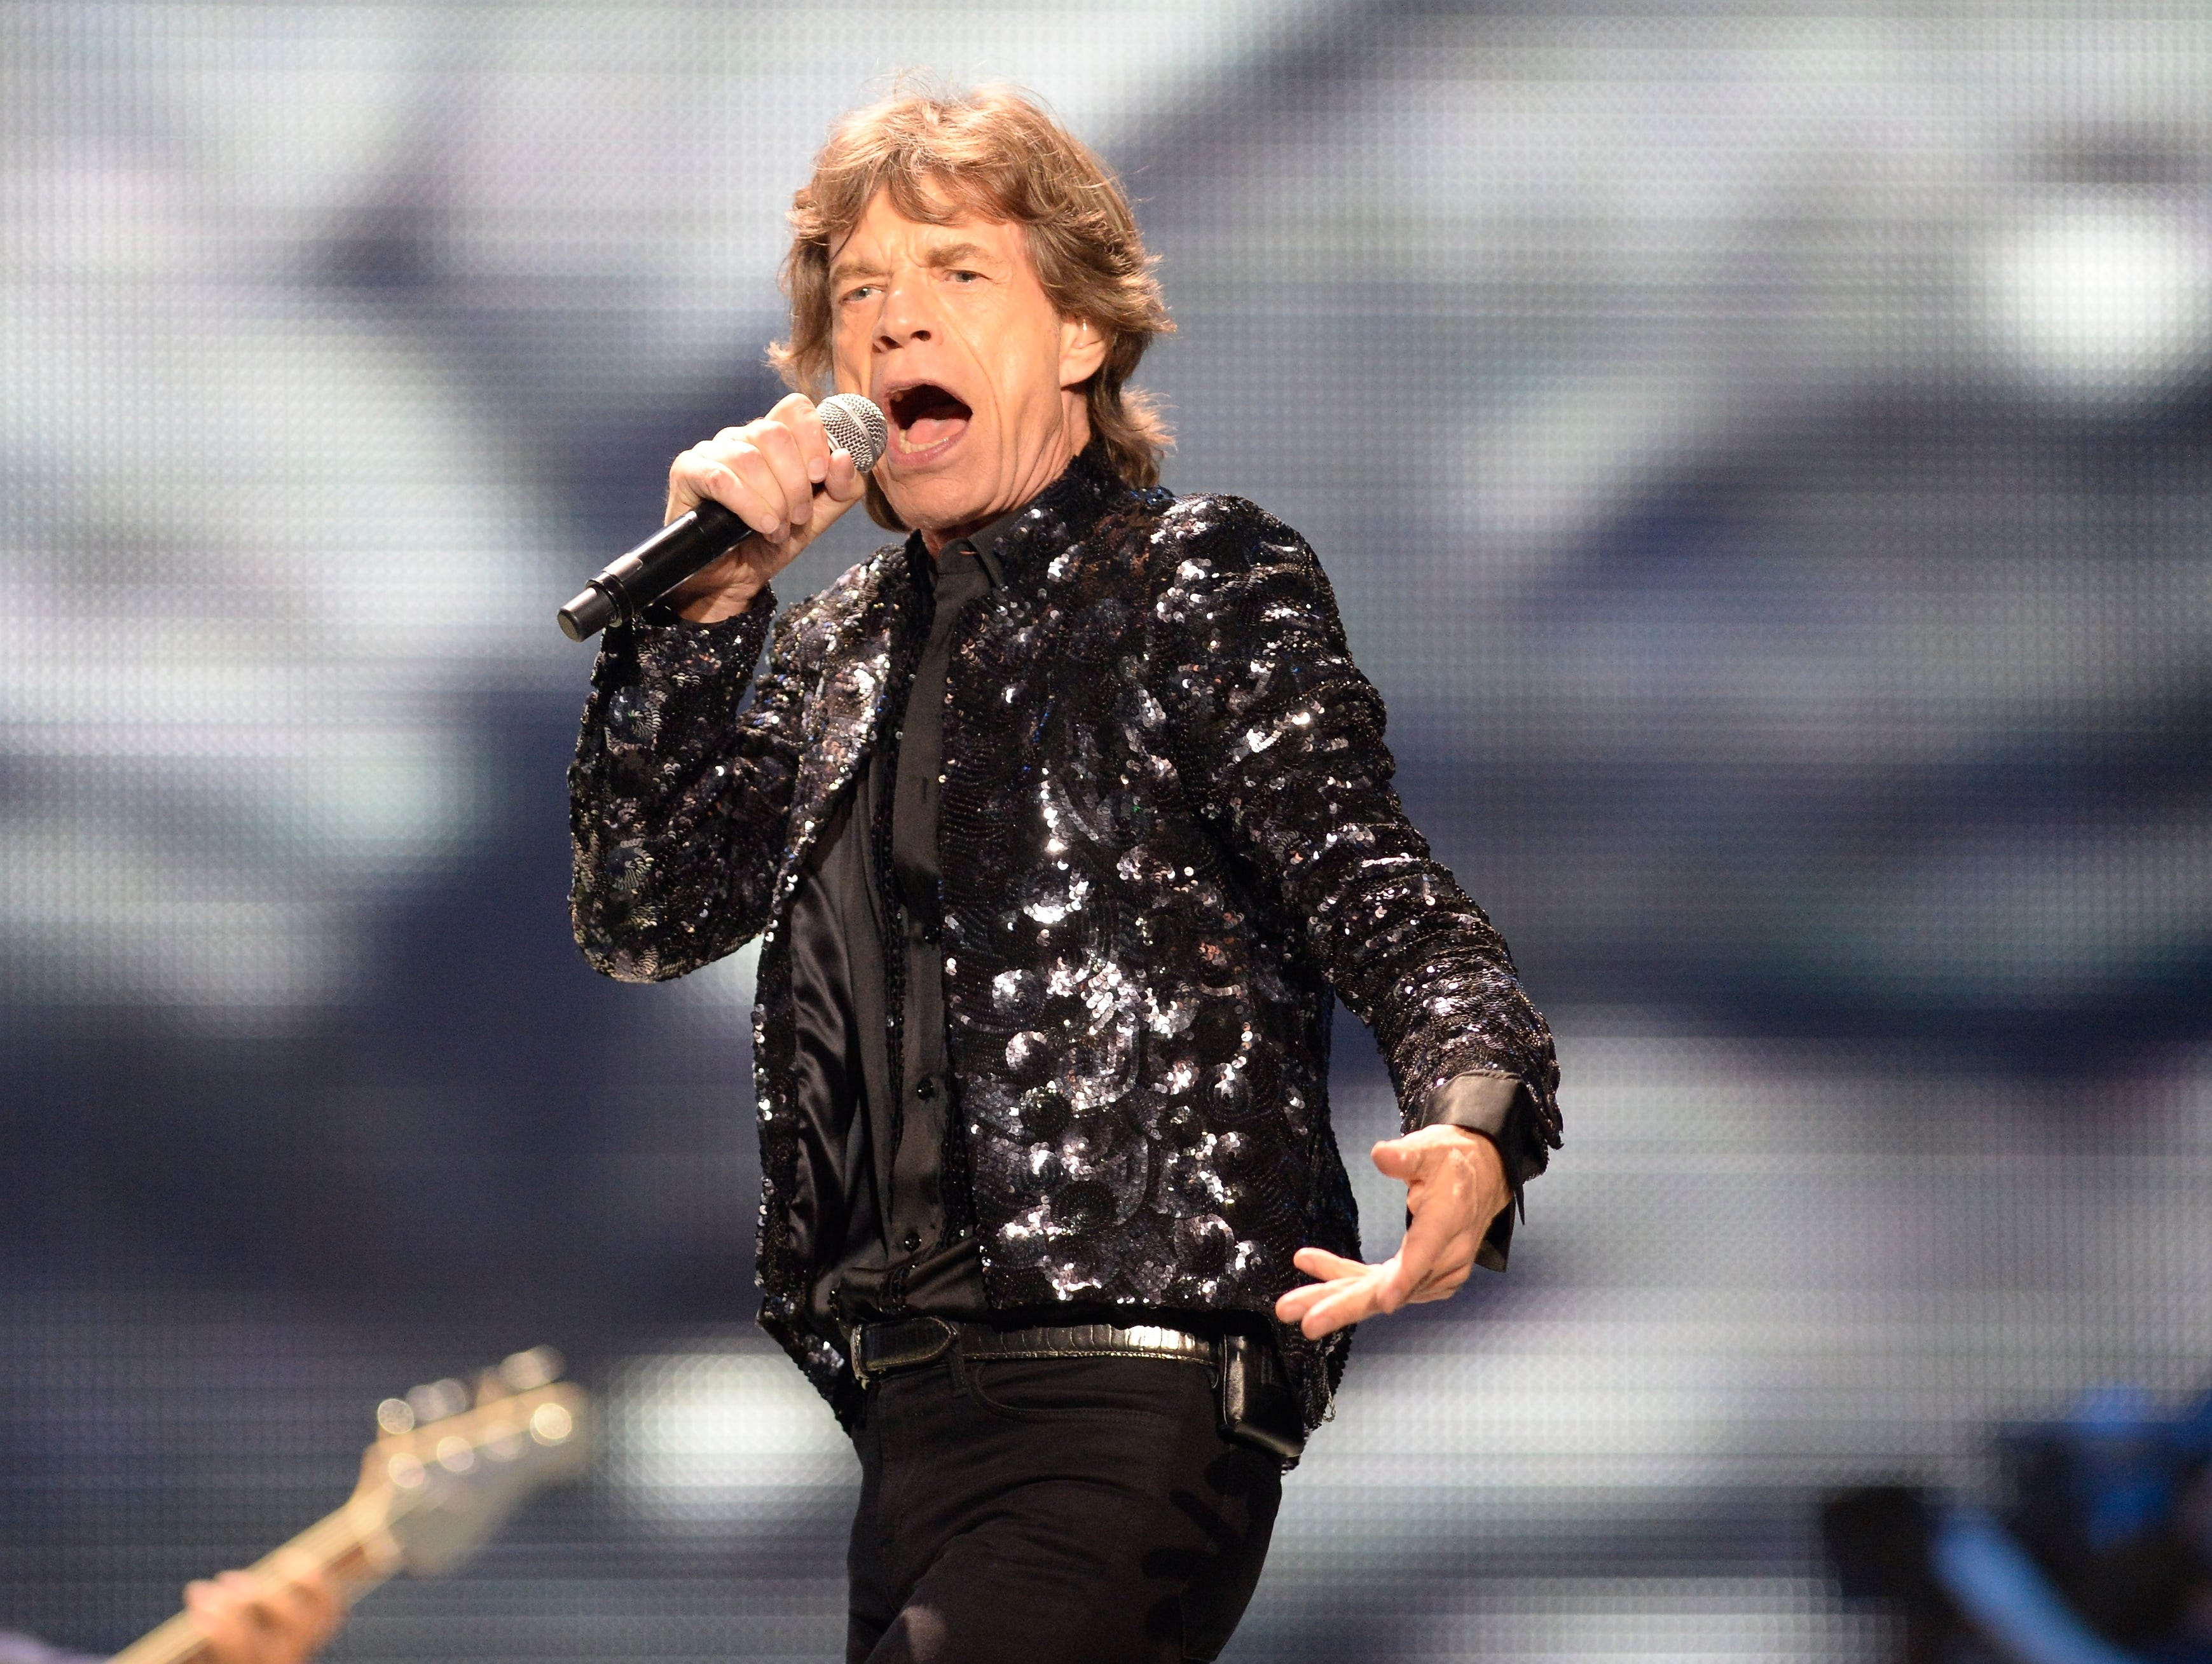 6/24/13 8:56:23 PM -- Washington, DC, U.S.A  -- Mick Jagger sings as the Rolling Stones perform the final show of the US leg of their 50th anniversary tour, and possibly their last show ever, as a group, in the US.  Photo by H. Darr Beiser, USA TODAY Staff ORG XMIT:  HB 129826 ROLLING STONES 6/24/2013 (Via OlyDrop)